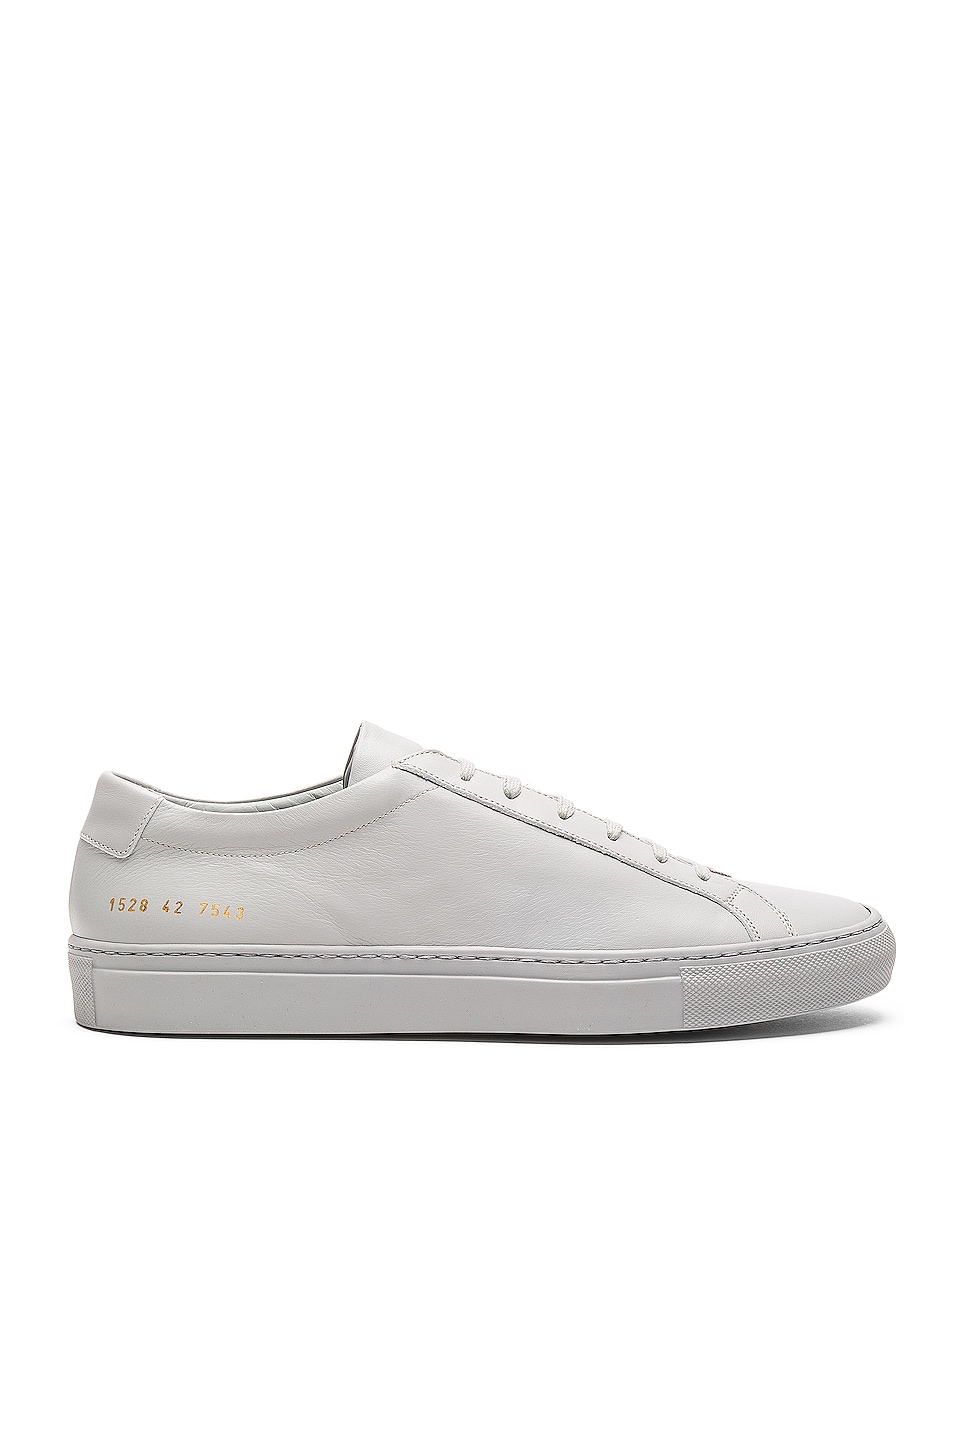 Common Projects Original Leather Achilles Low en Grey